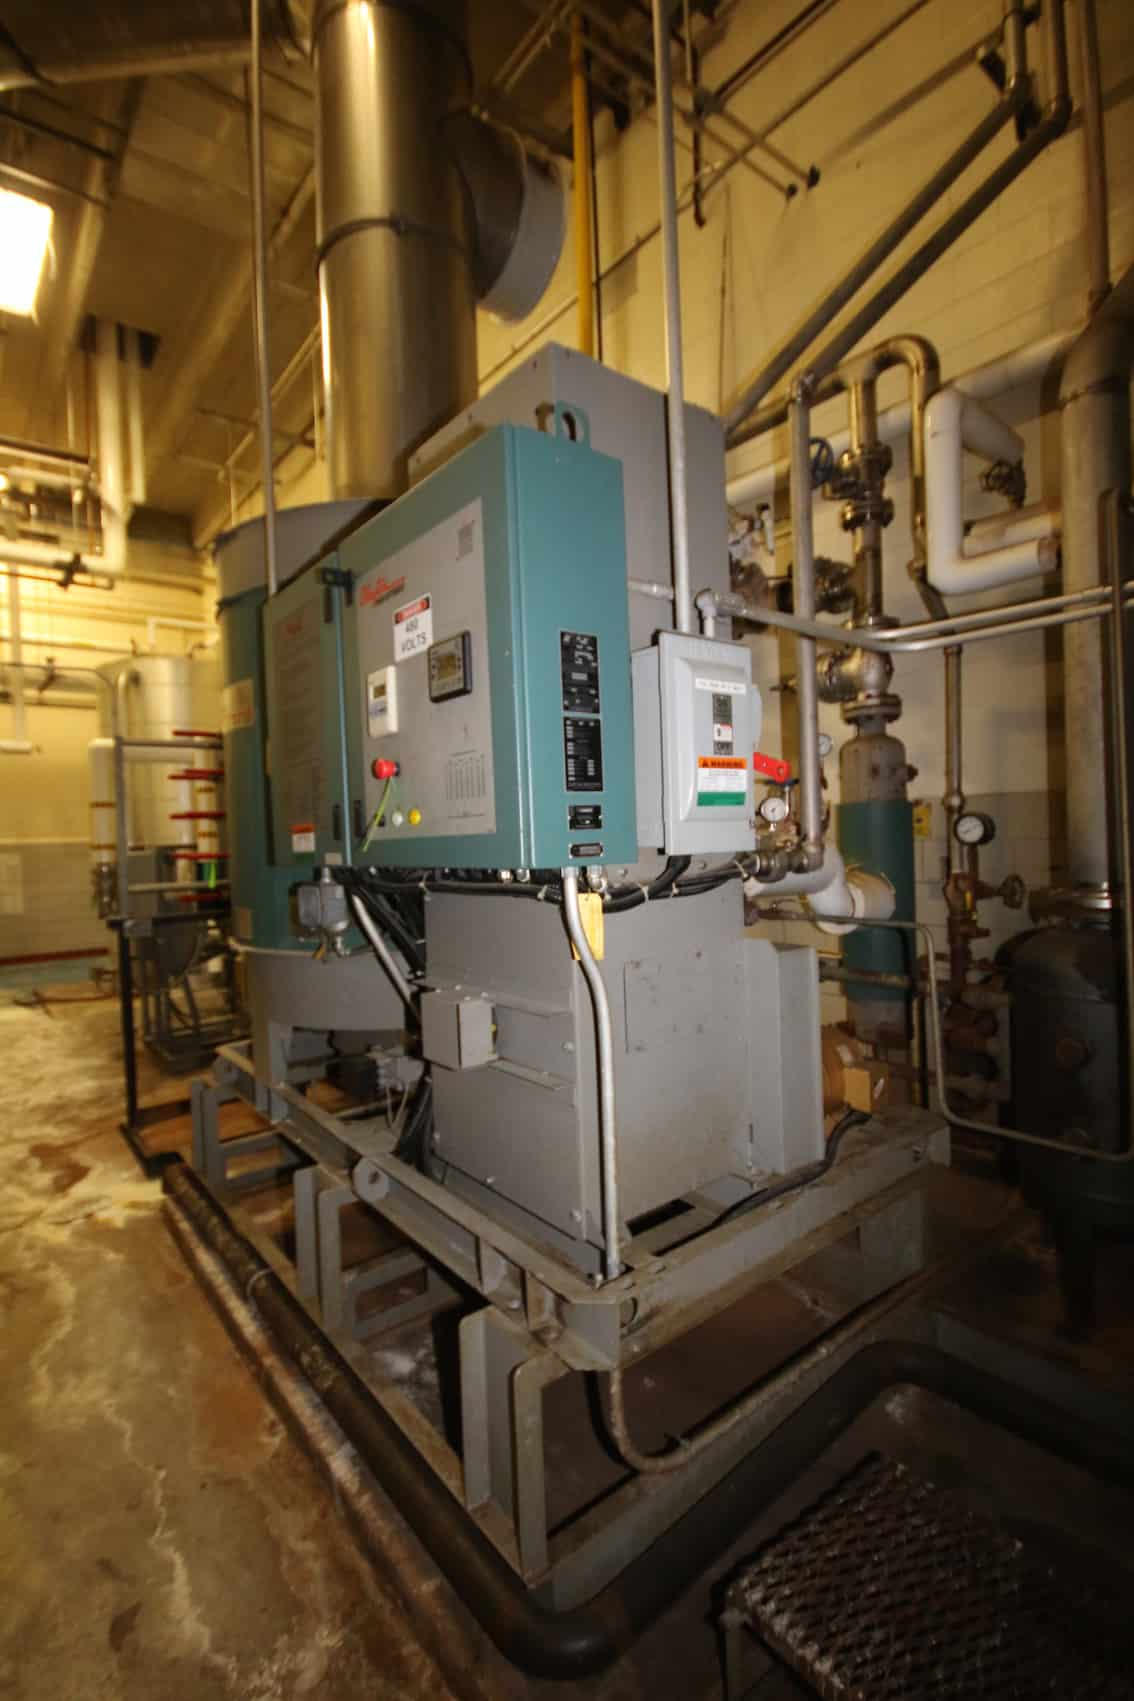 2011 Clayton Skid Mounted Steam Boiler, M/N EC-254-1-DZ, S/N 25047 - Clayton Skid Mounted Deaerator System with Water Softener